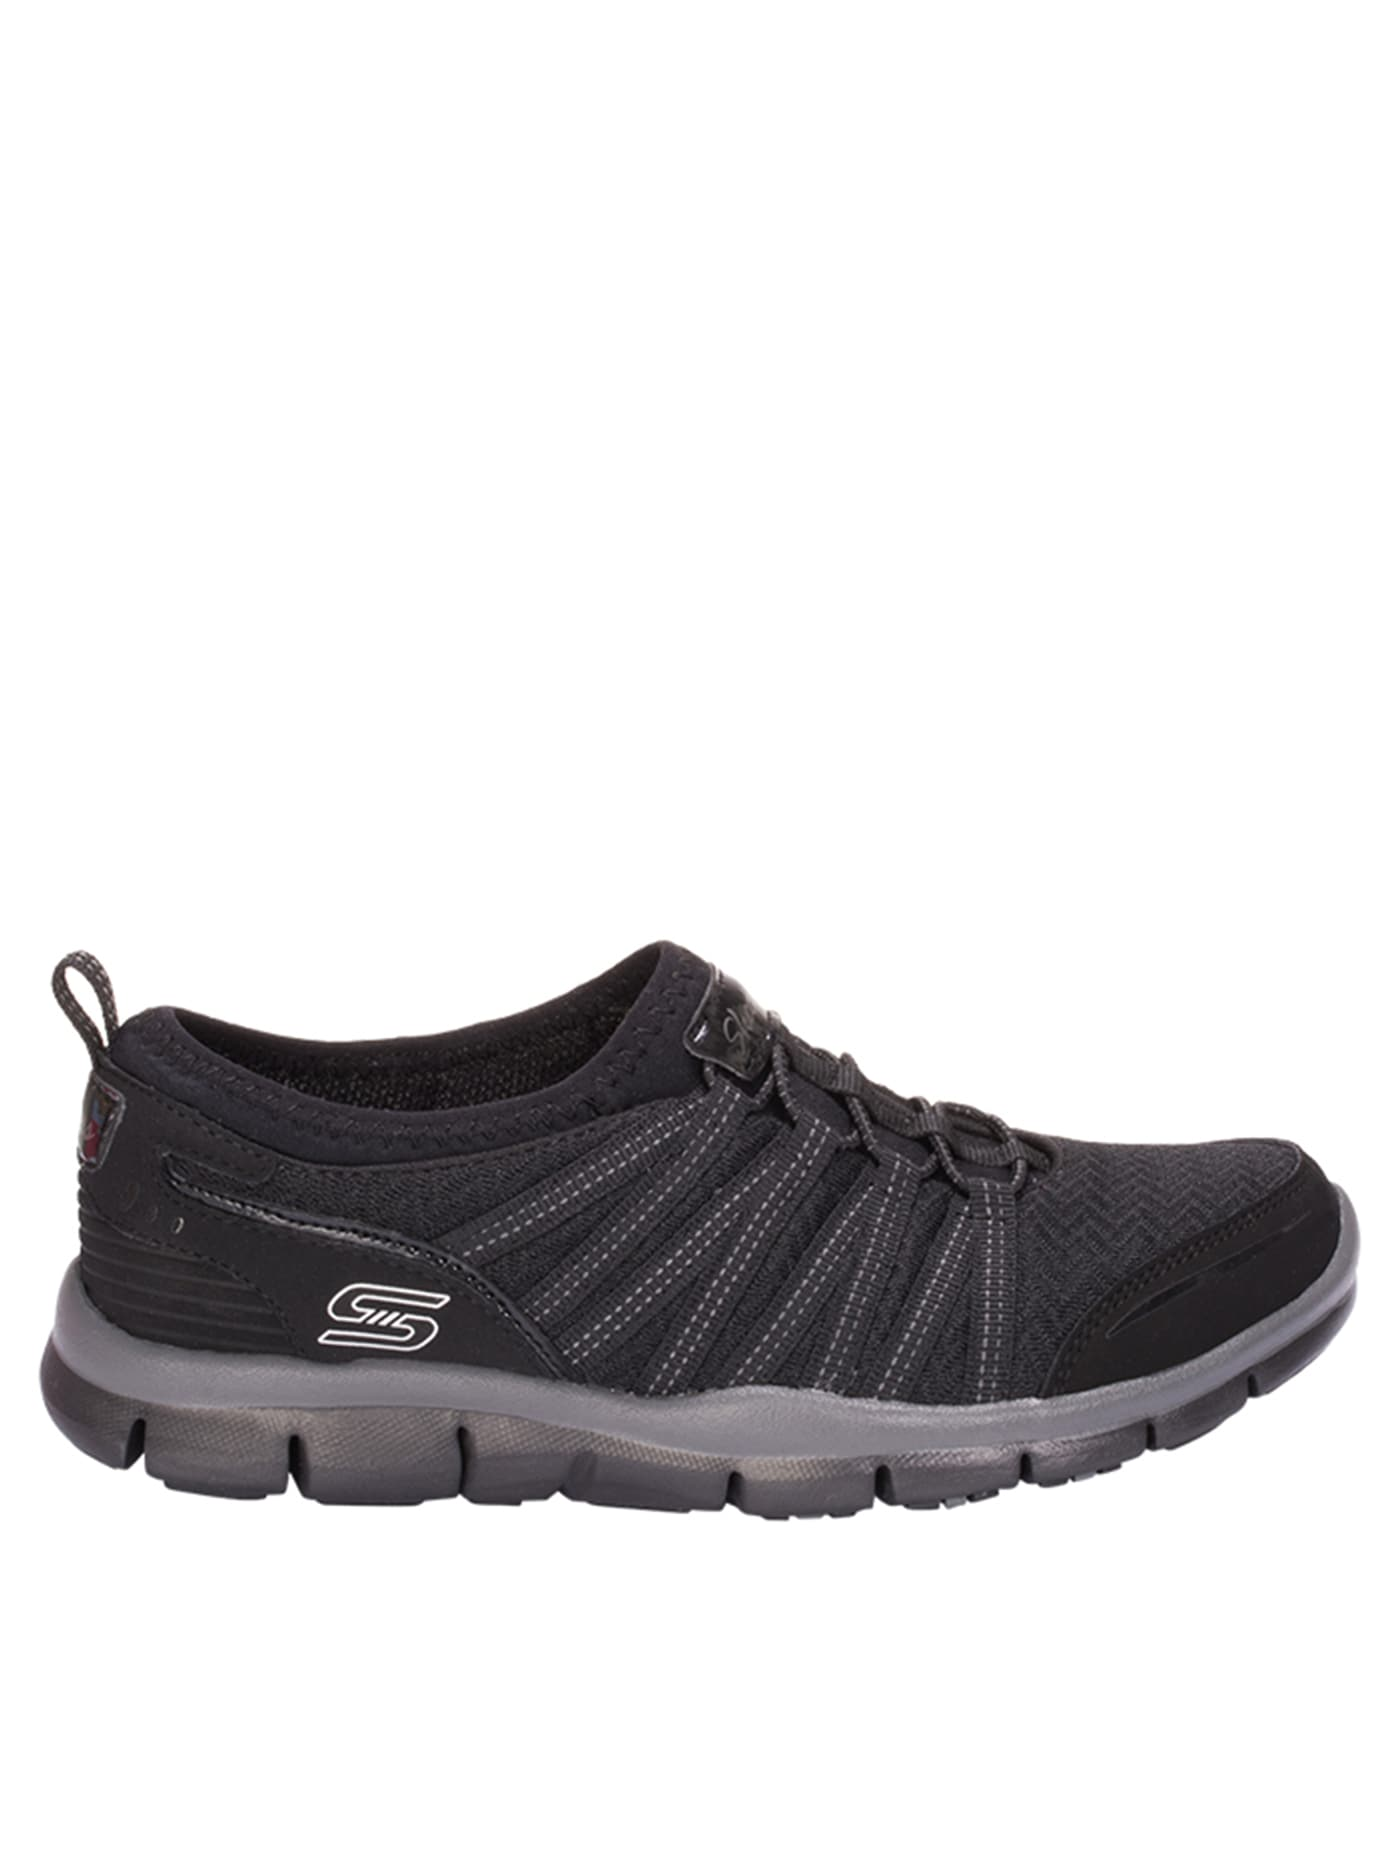 Breathe Easy Just Chill Shoes (for Women)